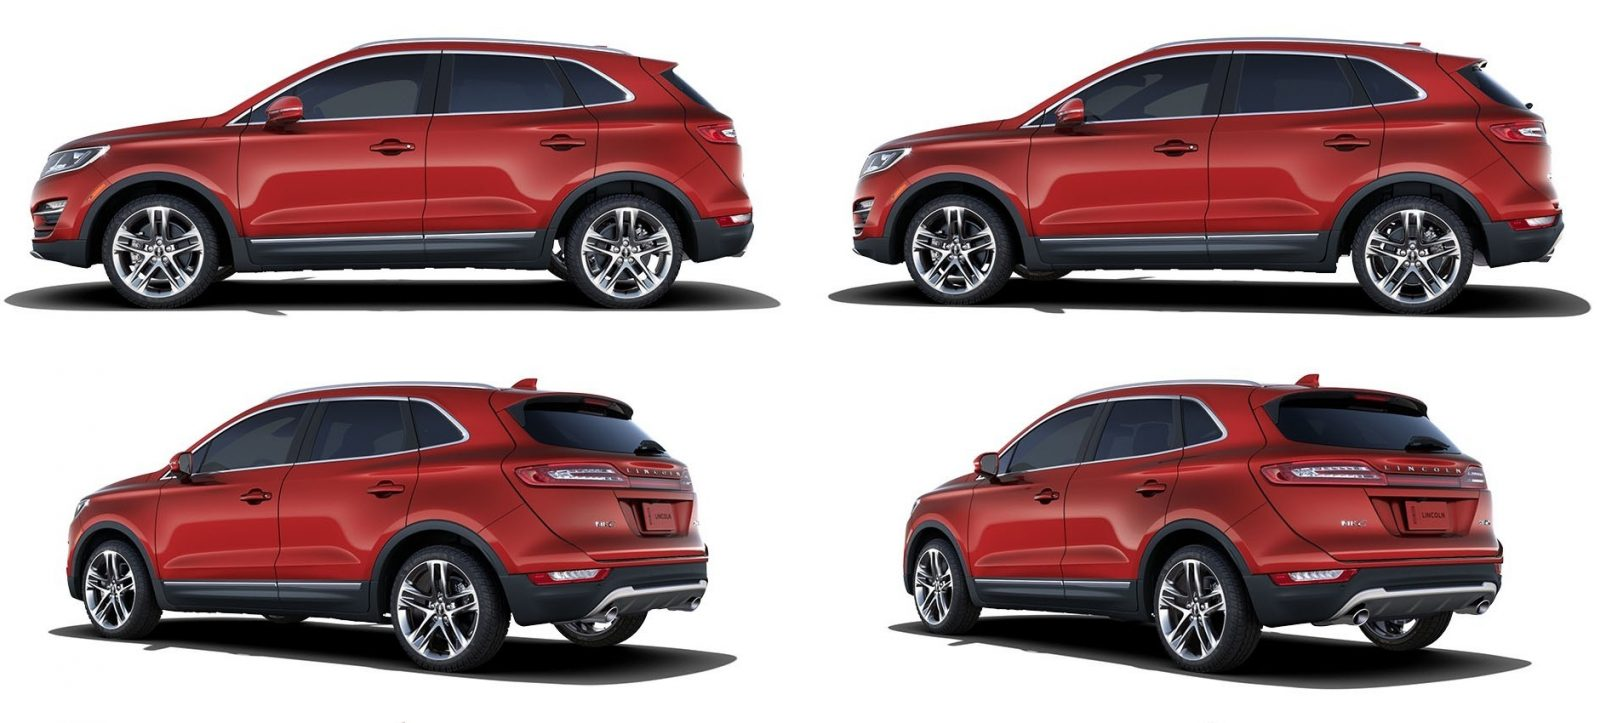 2015 Lincoln MKC Crossover - A Cool Mix of Infiniti and Audi93